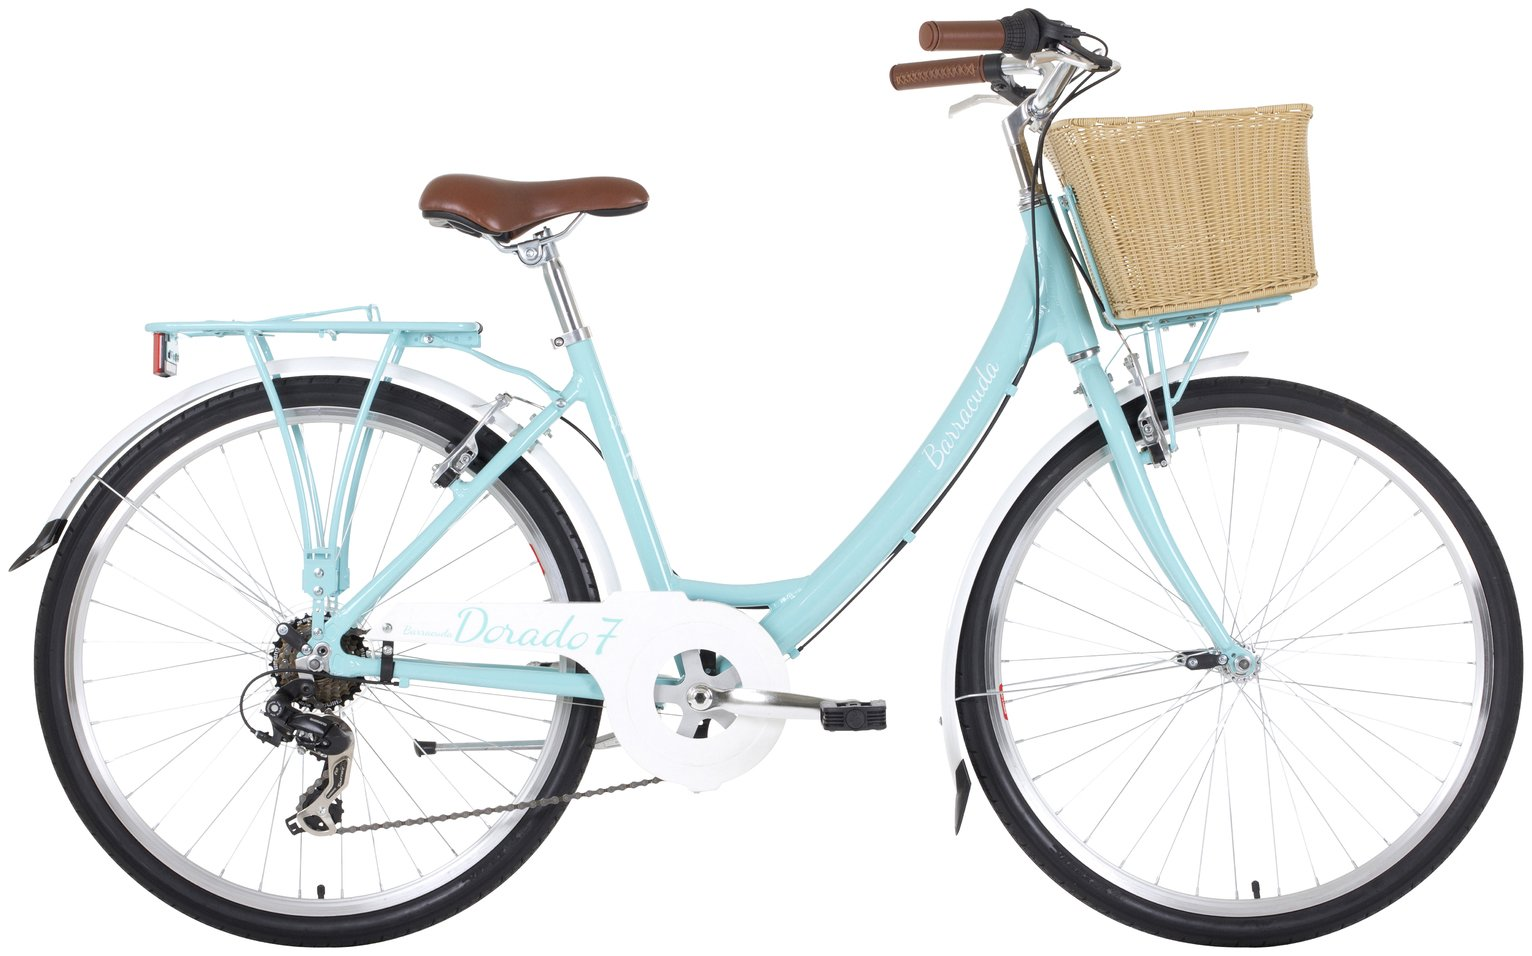 Image of Barracuda Dorado 7 17 inch Hybrid Bike - Adult's.